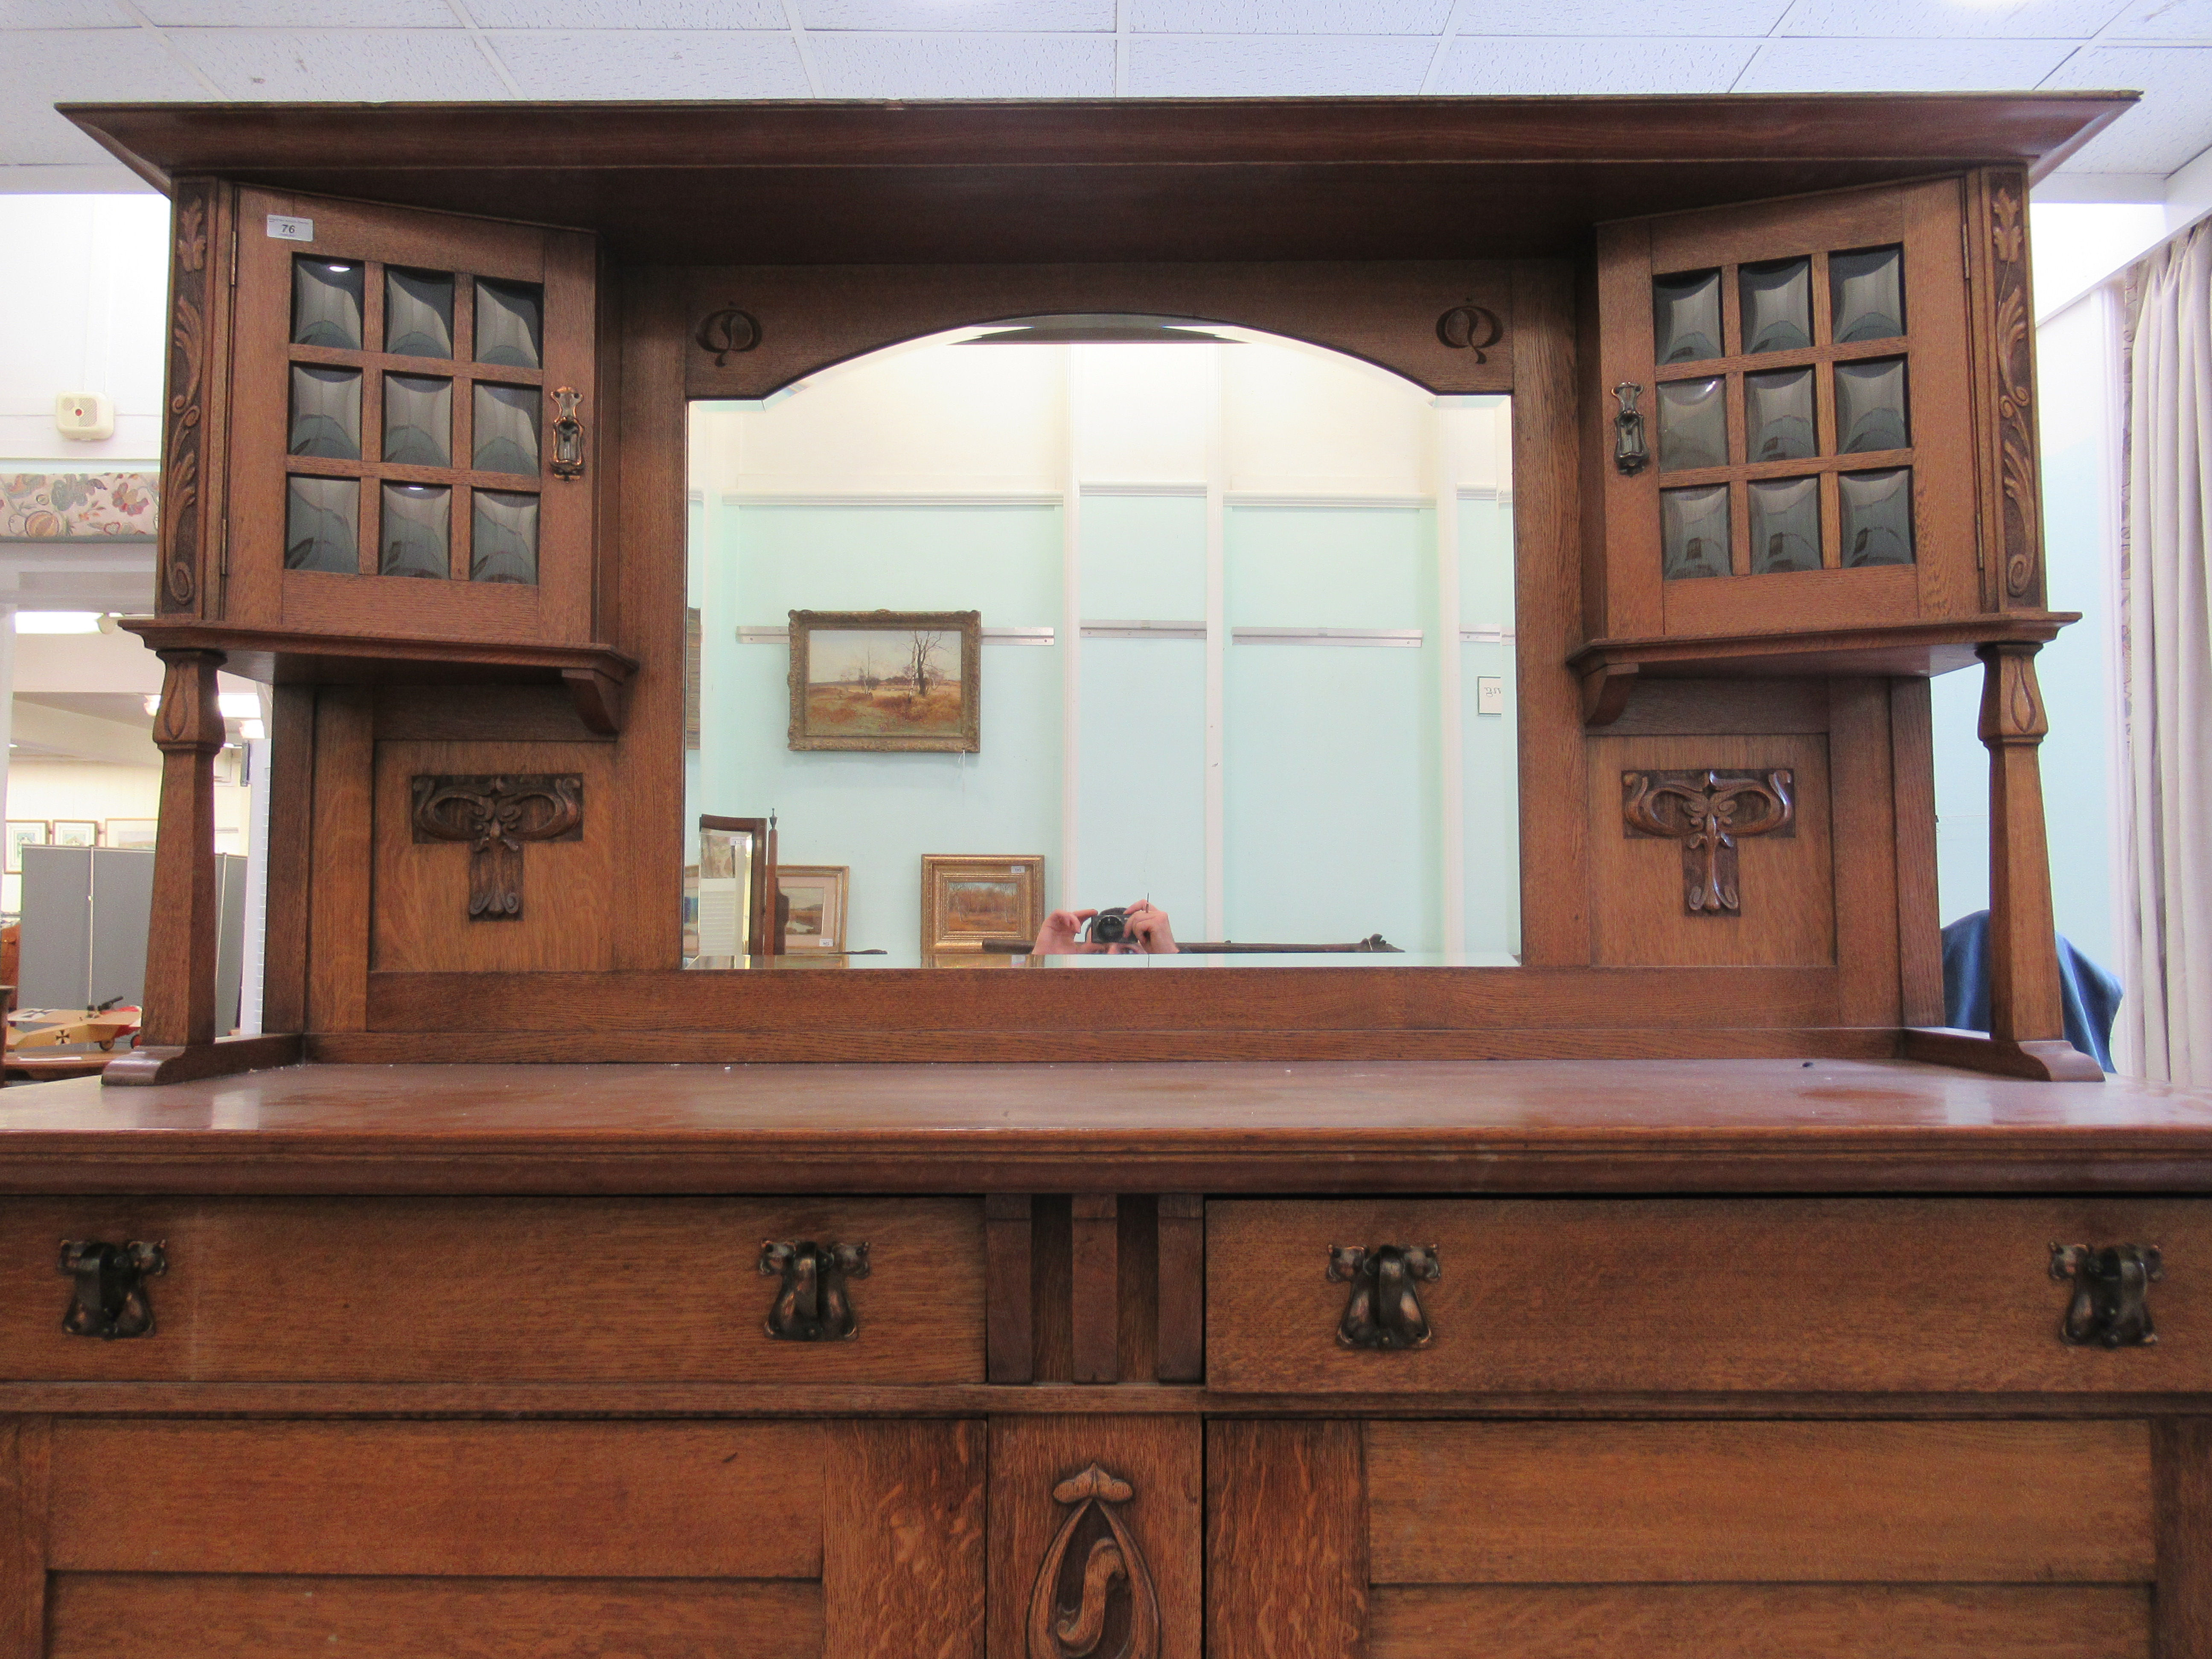 An early 20thC Liberty & Co light oak dresser with carved organically inspired ornament, the - Image 2 of 14